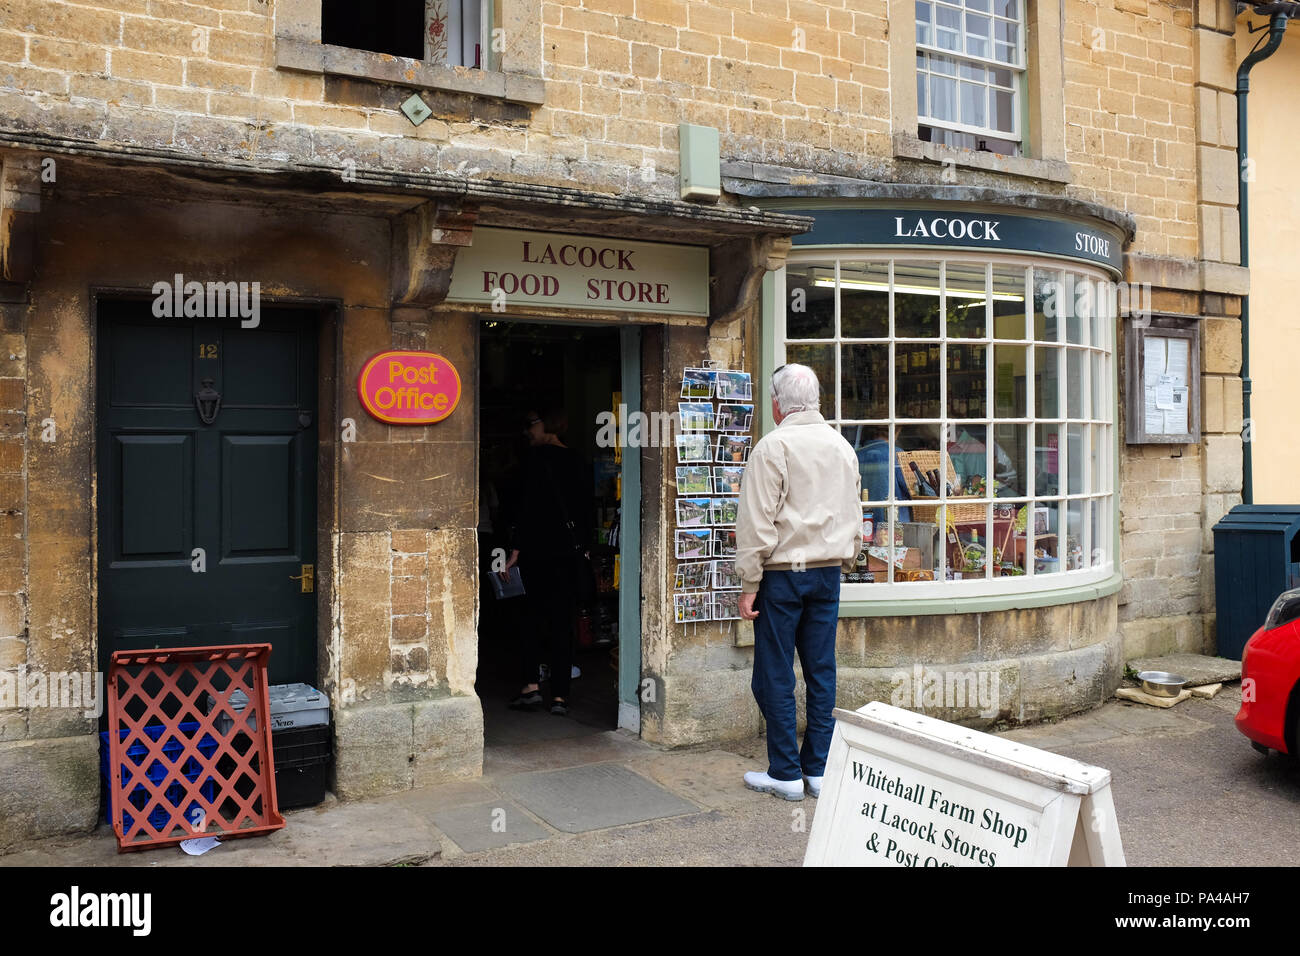 A small shop in the village of Lacock in Wiltshire, England. Stock Photo